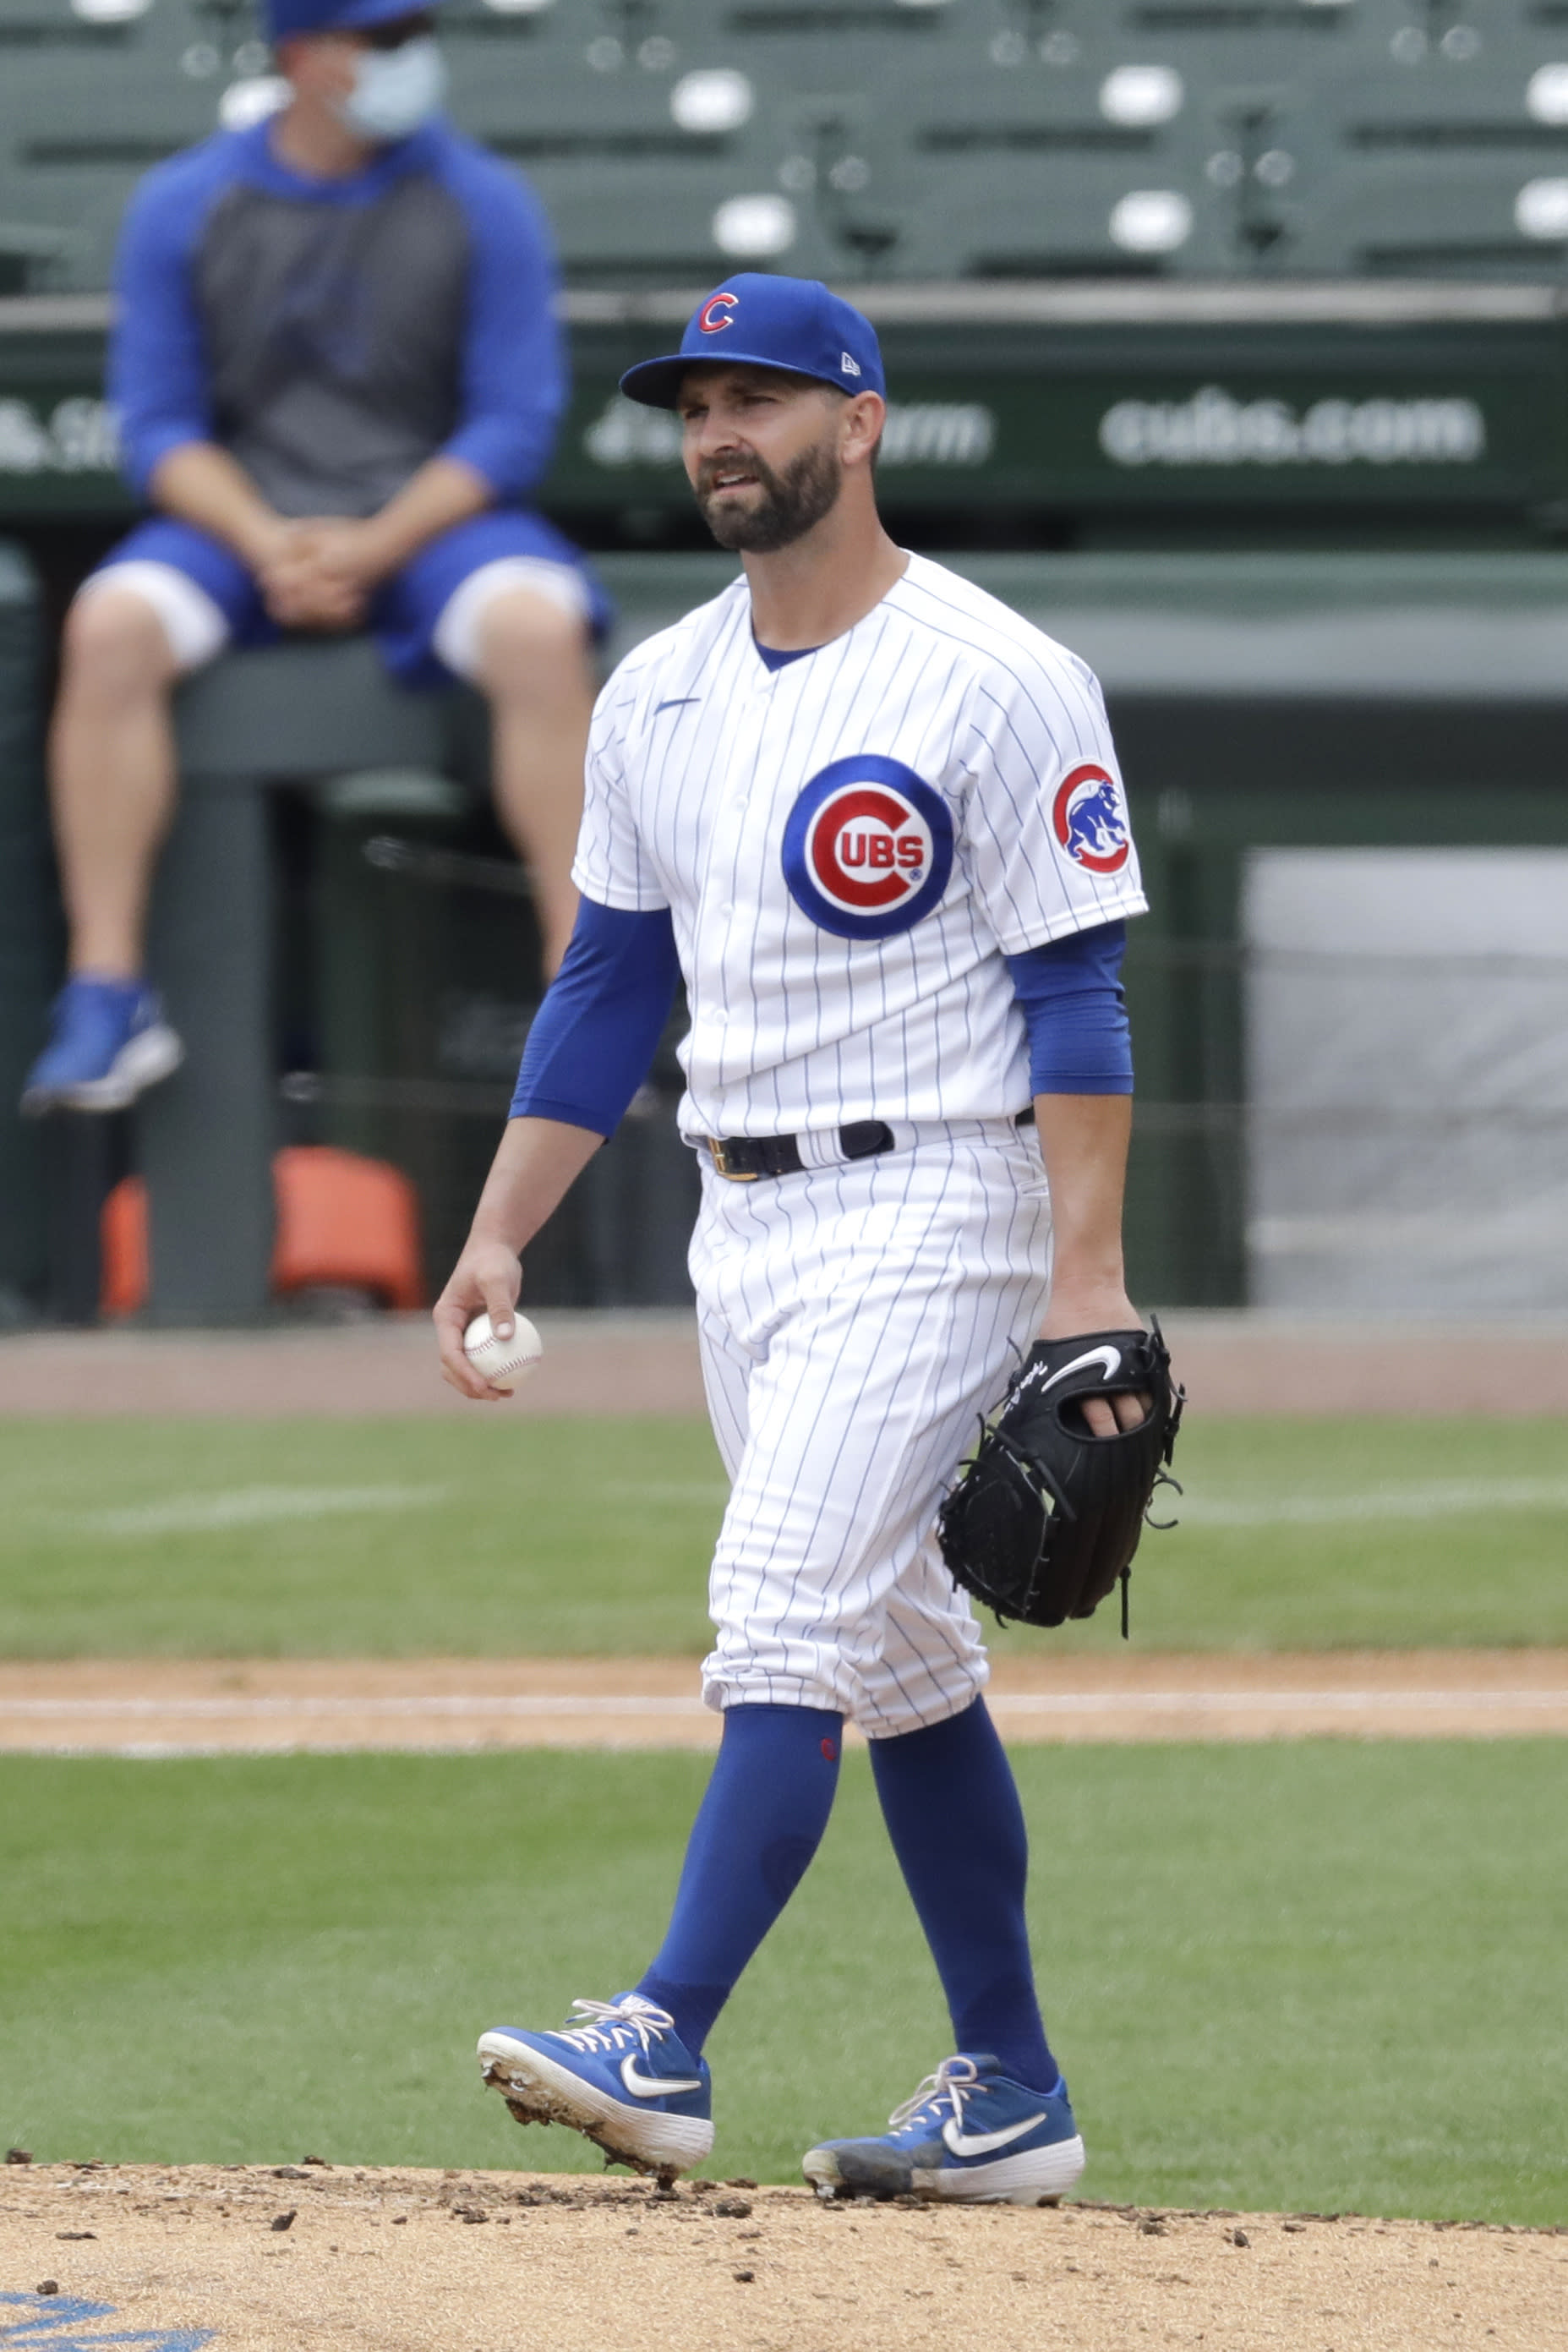 Chicago Cubs pitcher Tyler Chatwood reacts after Ian Happ hit a three-run home run during an intra-squad baseball game at Wrigley Field in Chicago, Wednesday, July 15, 2020. (AP Photo/Nam Y. Huh)